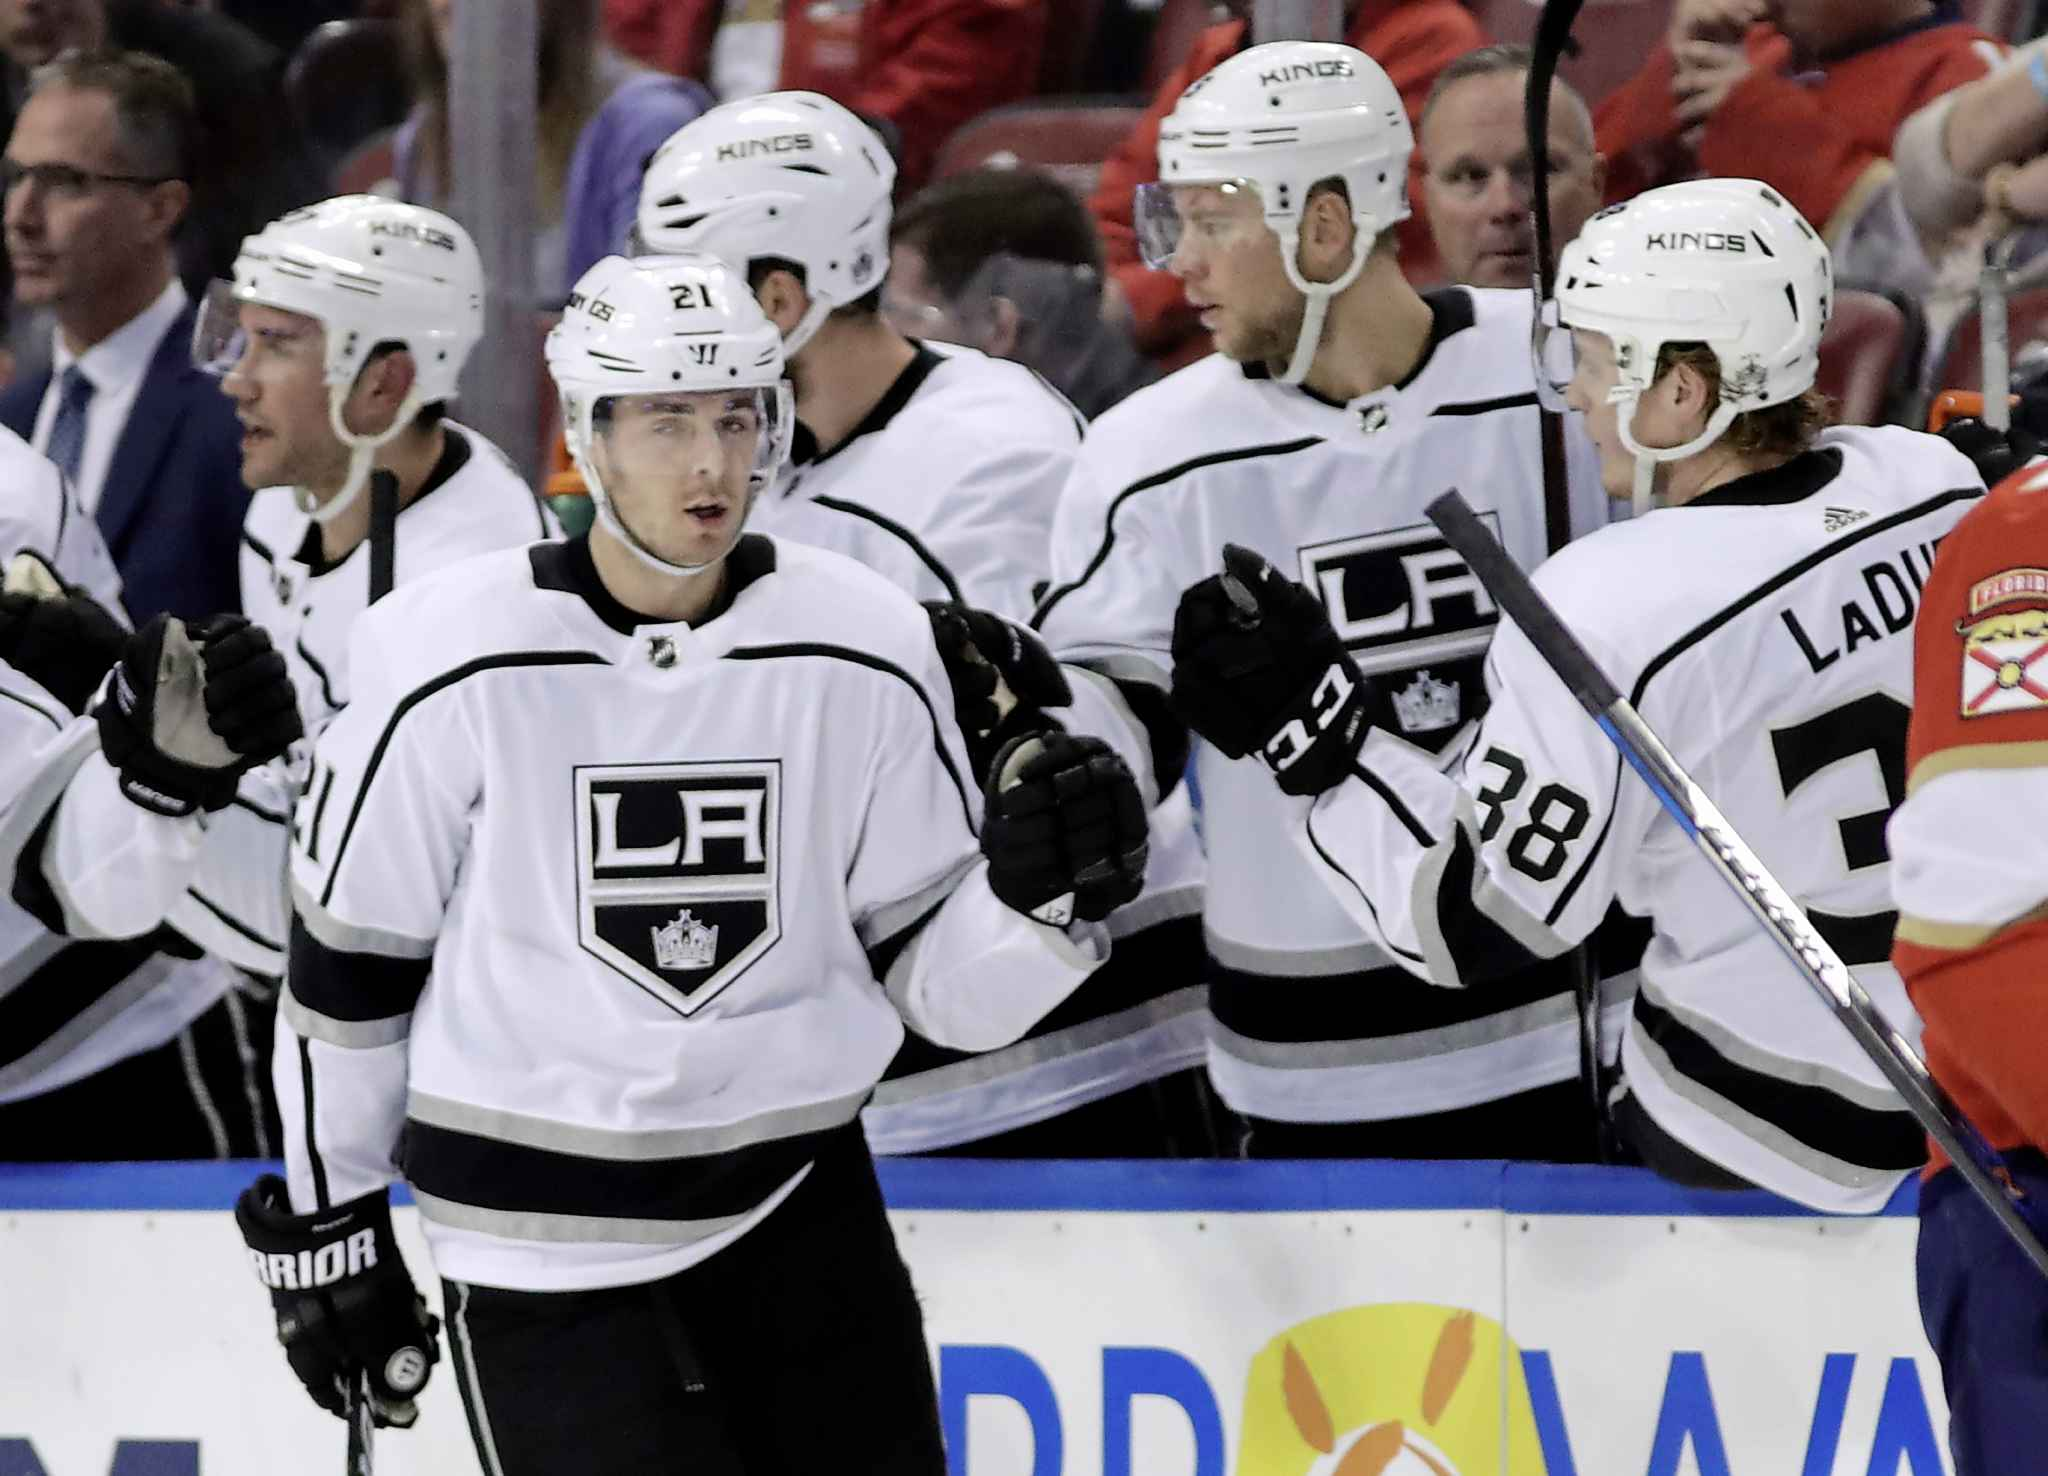 Los Angeles Kings' Nick Shore is congratulated after scoring a goal against the Florida Panthers during the  Friday, Feb. 9, 2018, in Florida. (Lynne Sladky / The Associated Press files)